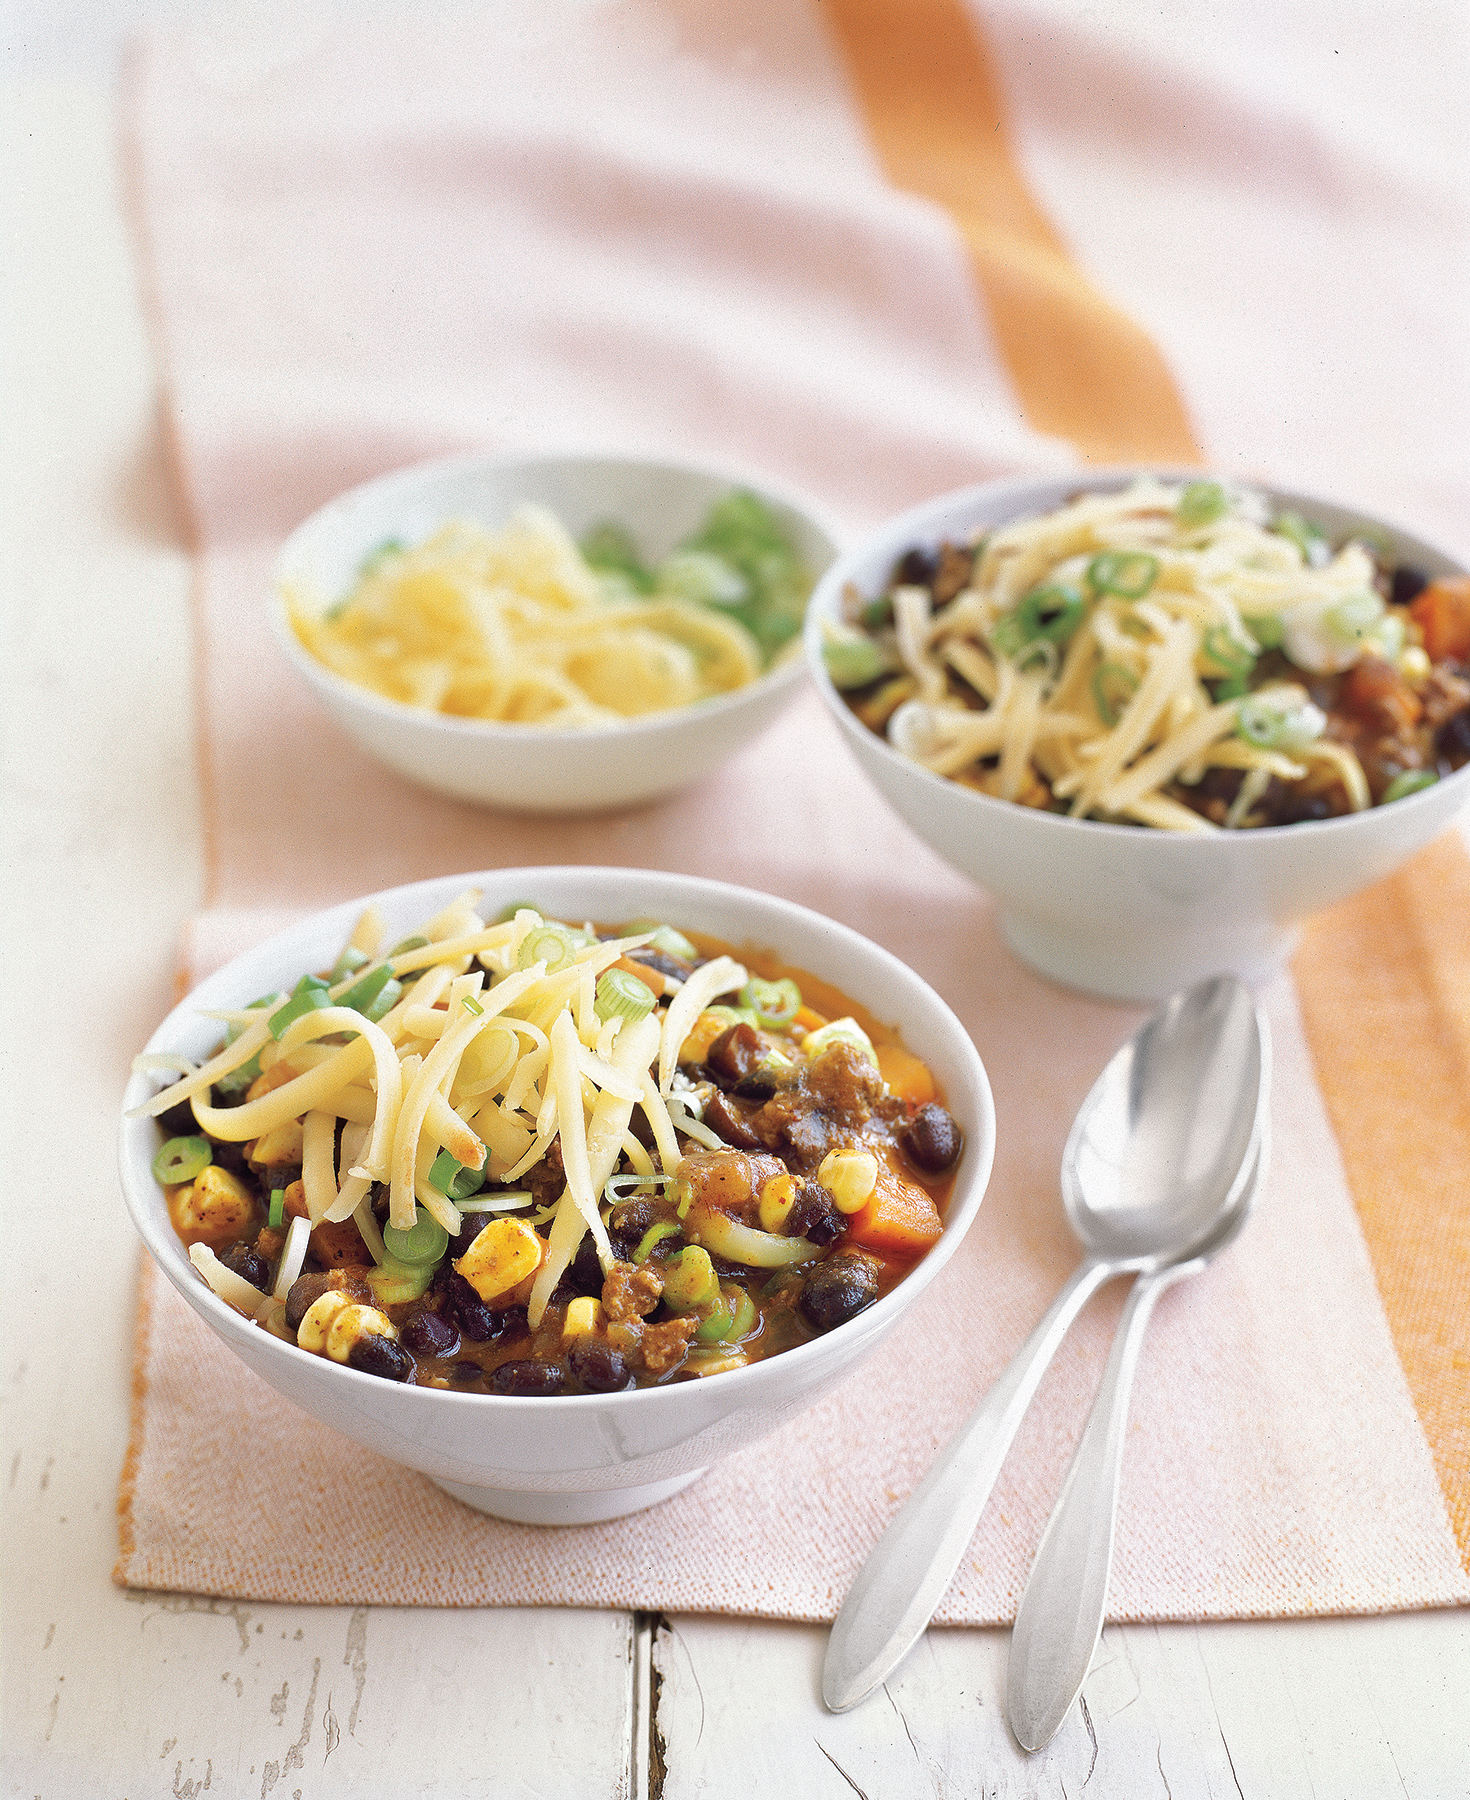 Quick Dinner Ideas: Southwestern Beef Chili With Corn